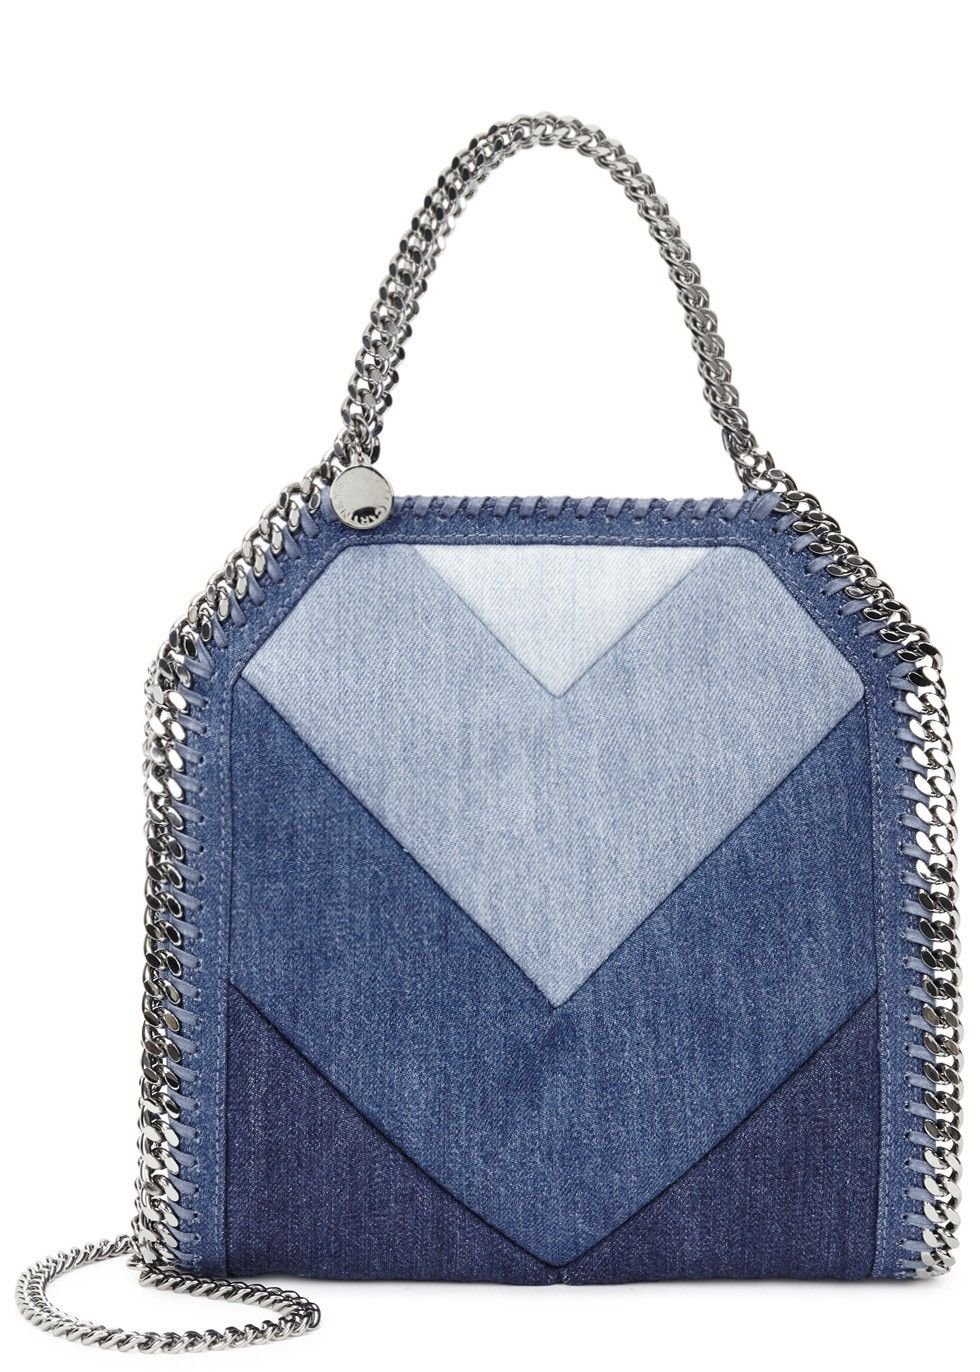 Stella McCartney Falabella mini denim shoulder bag £660 Harvey Nichols c71dea1329189